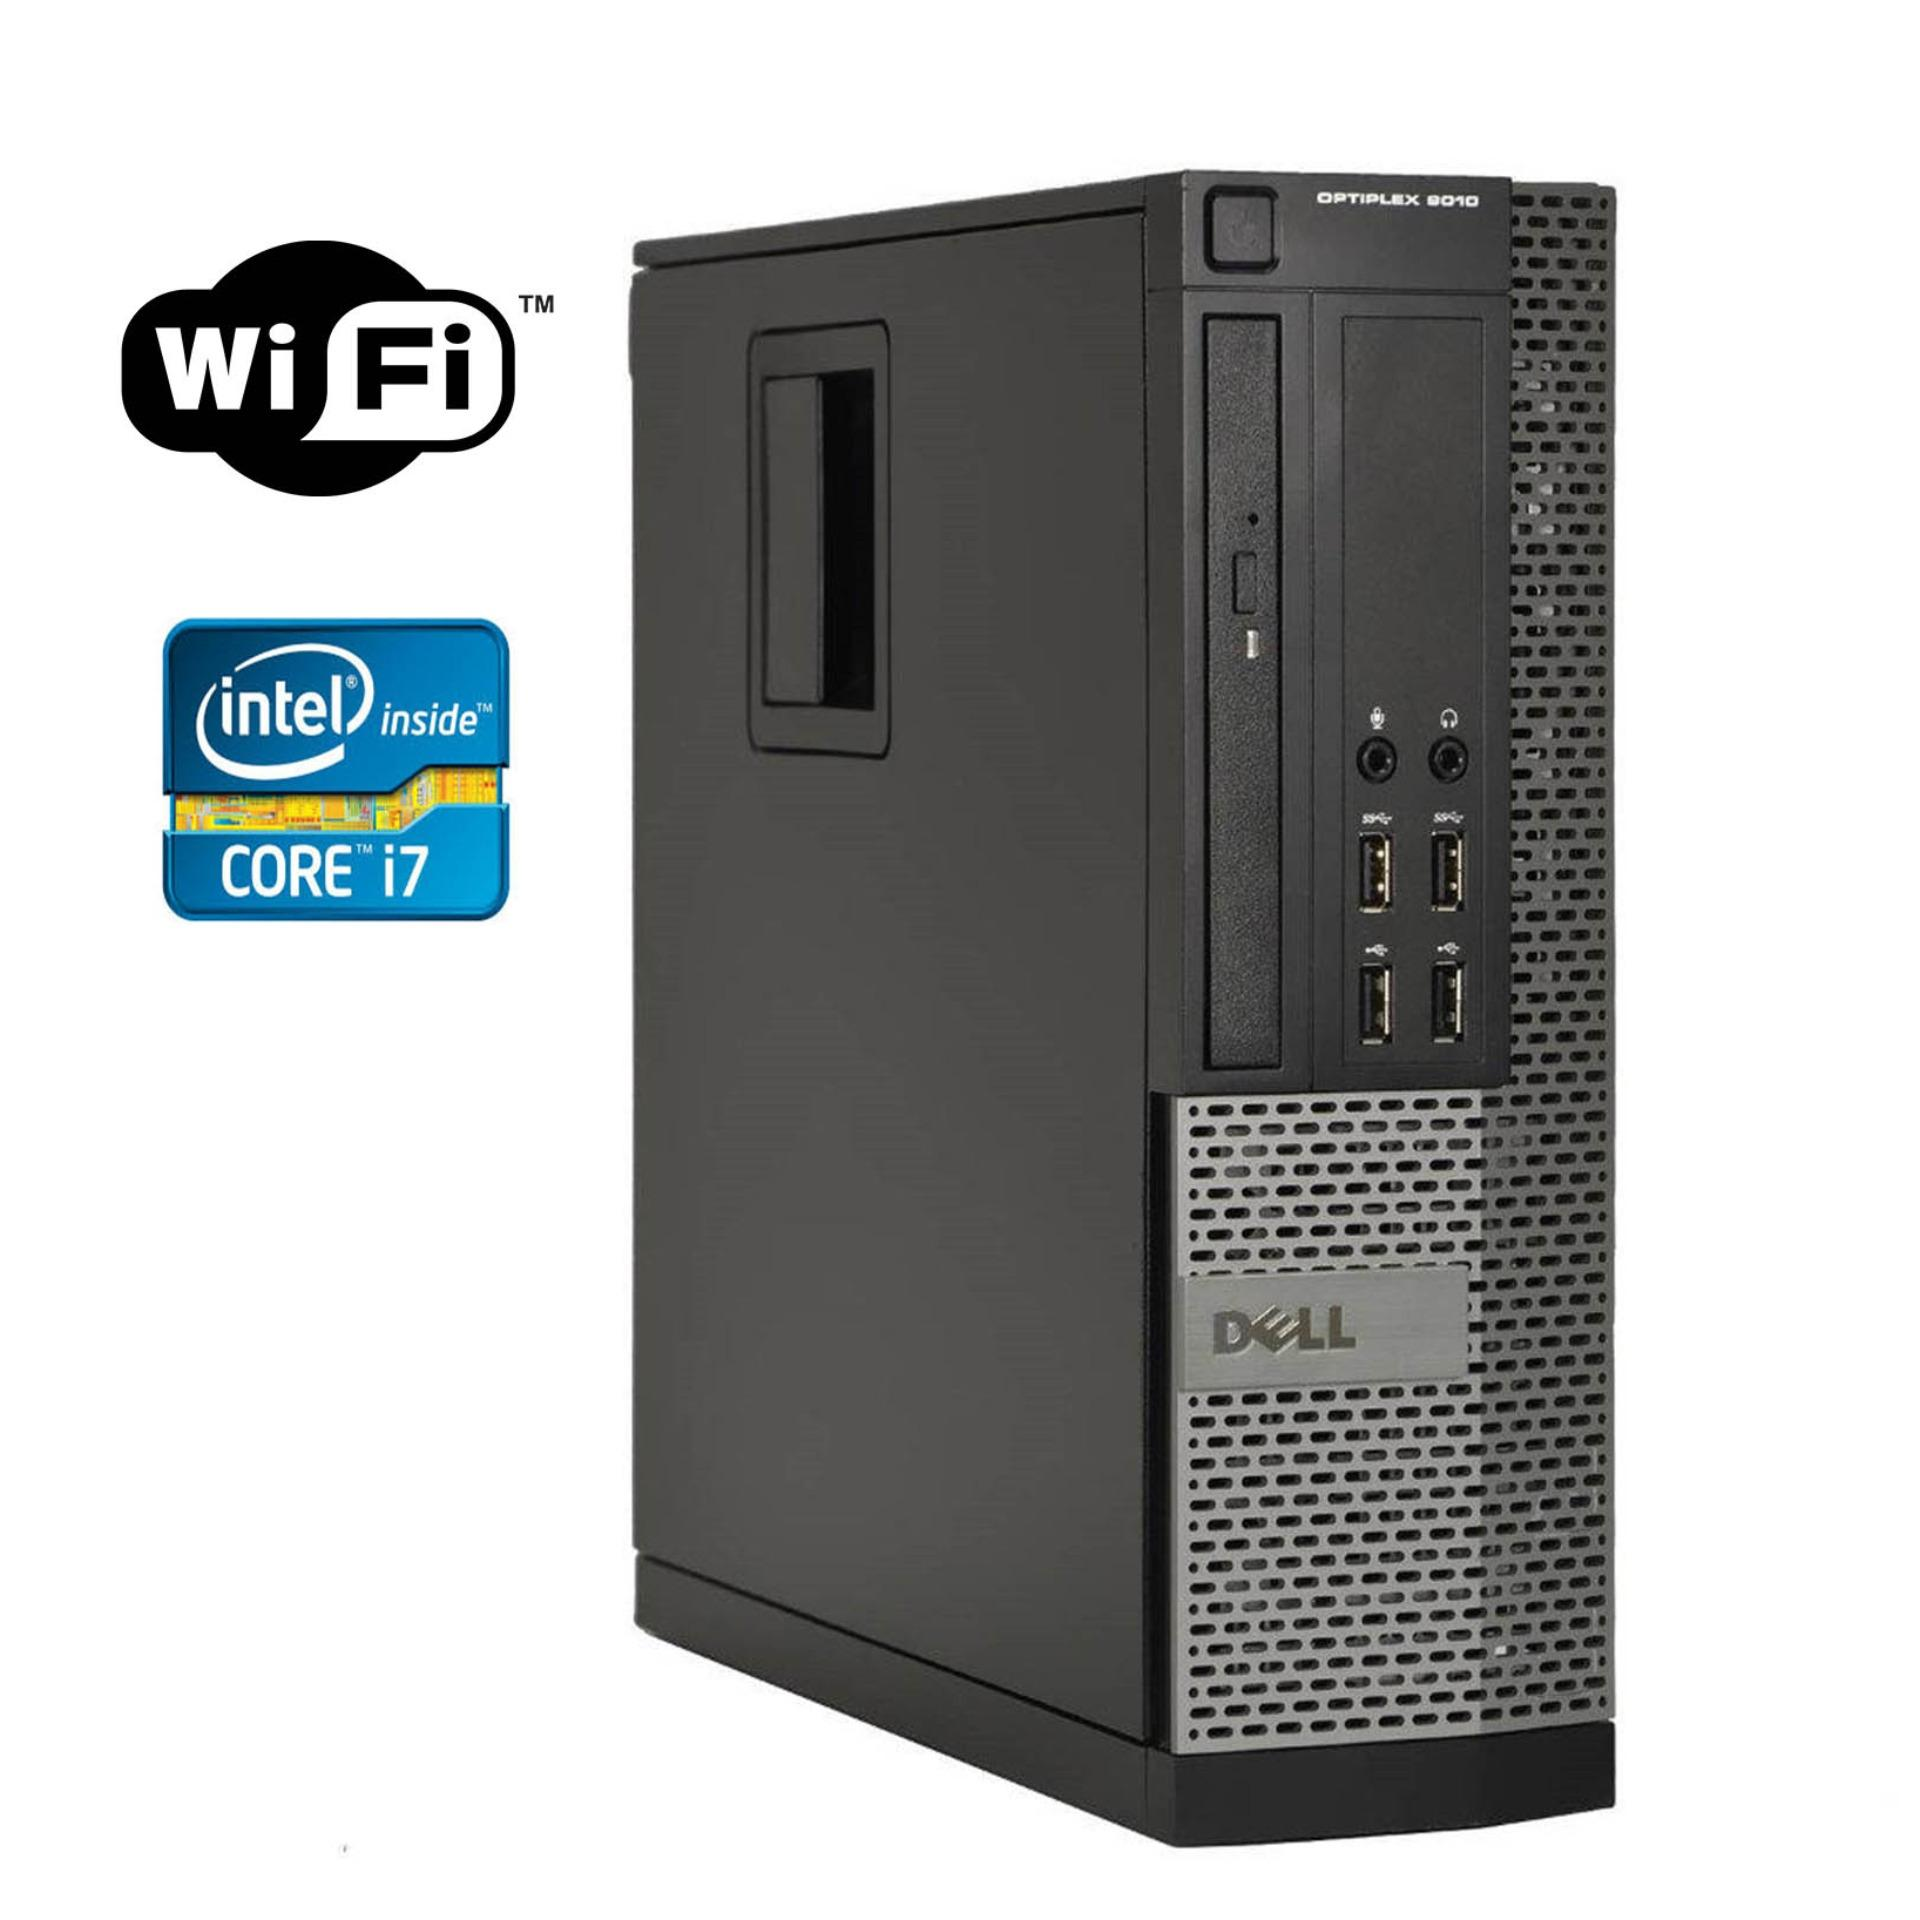 Dell Optiplex 9010 Desktop Intel Core I7 3 40 Ghz Processor - Turbo 3 9Ghz  3Rd Generation